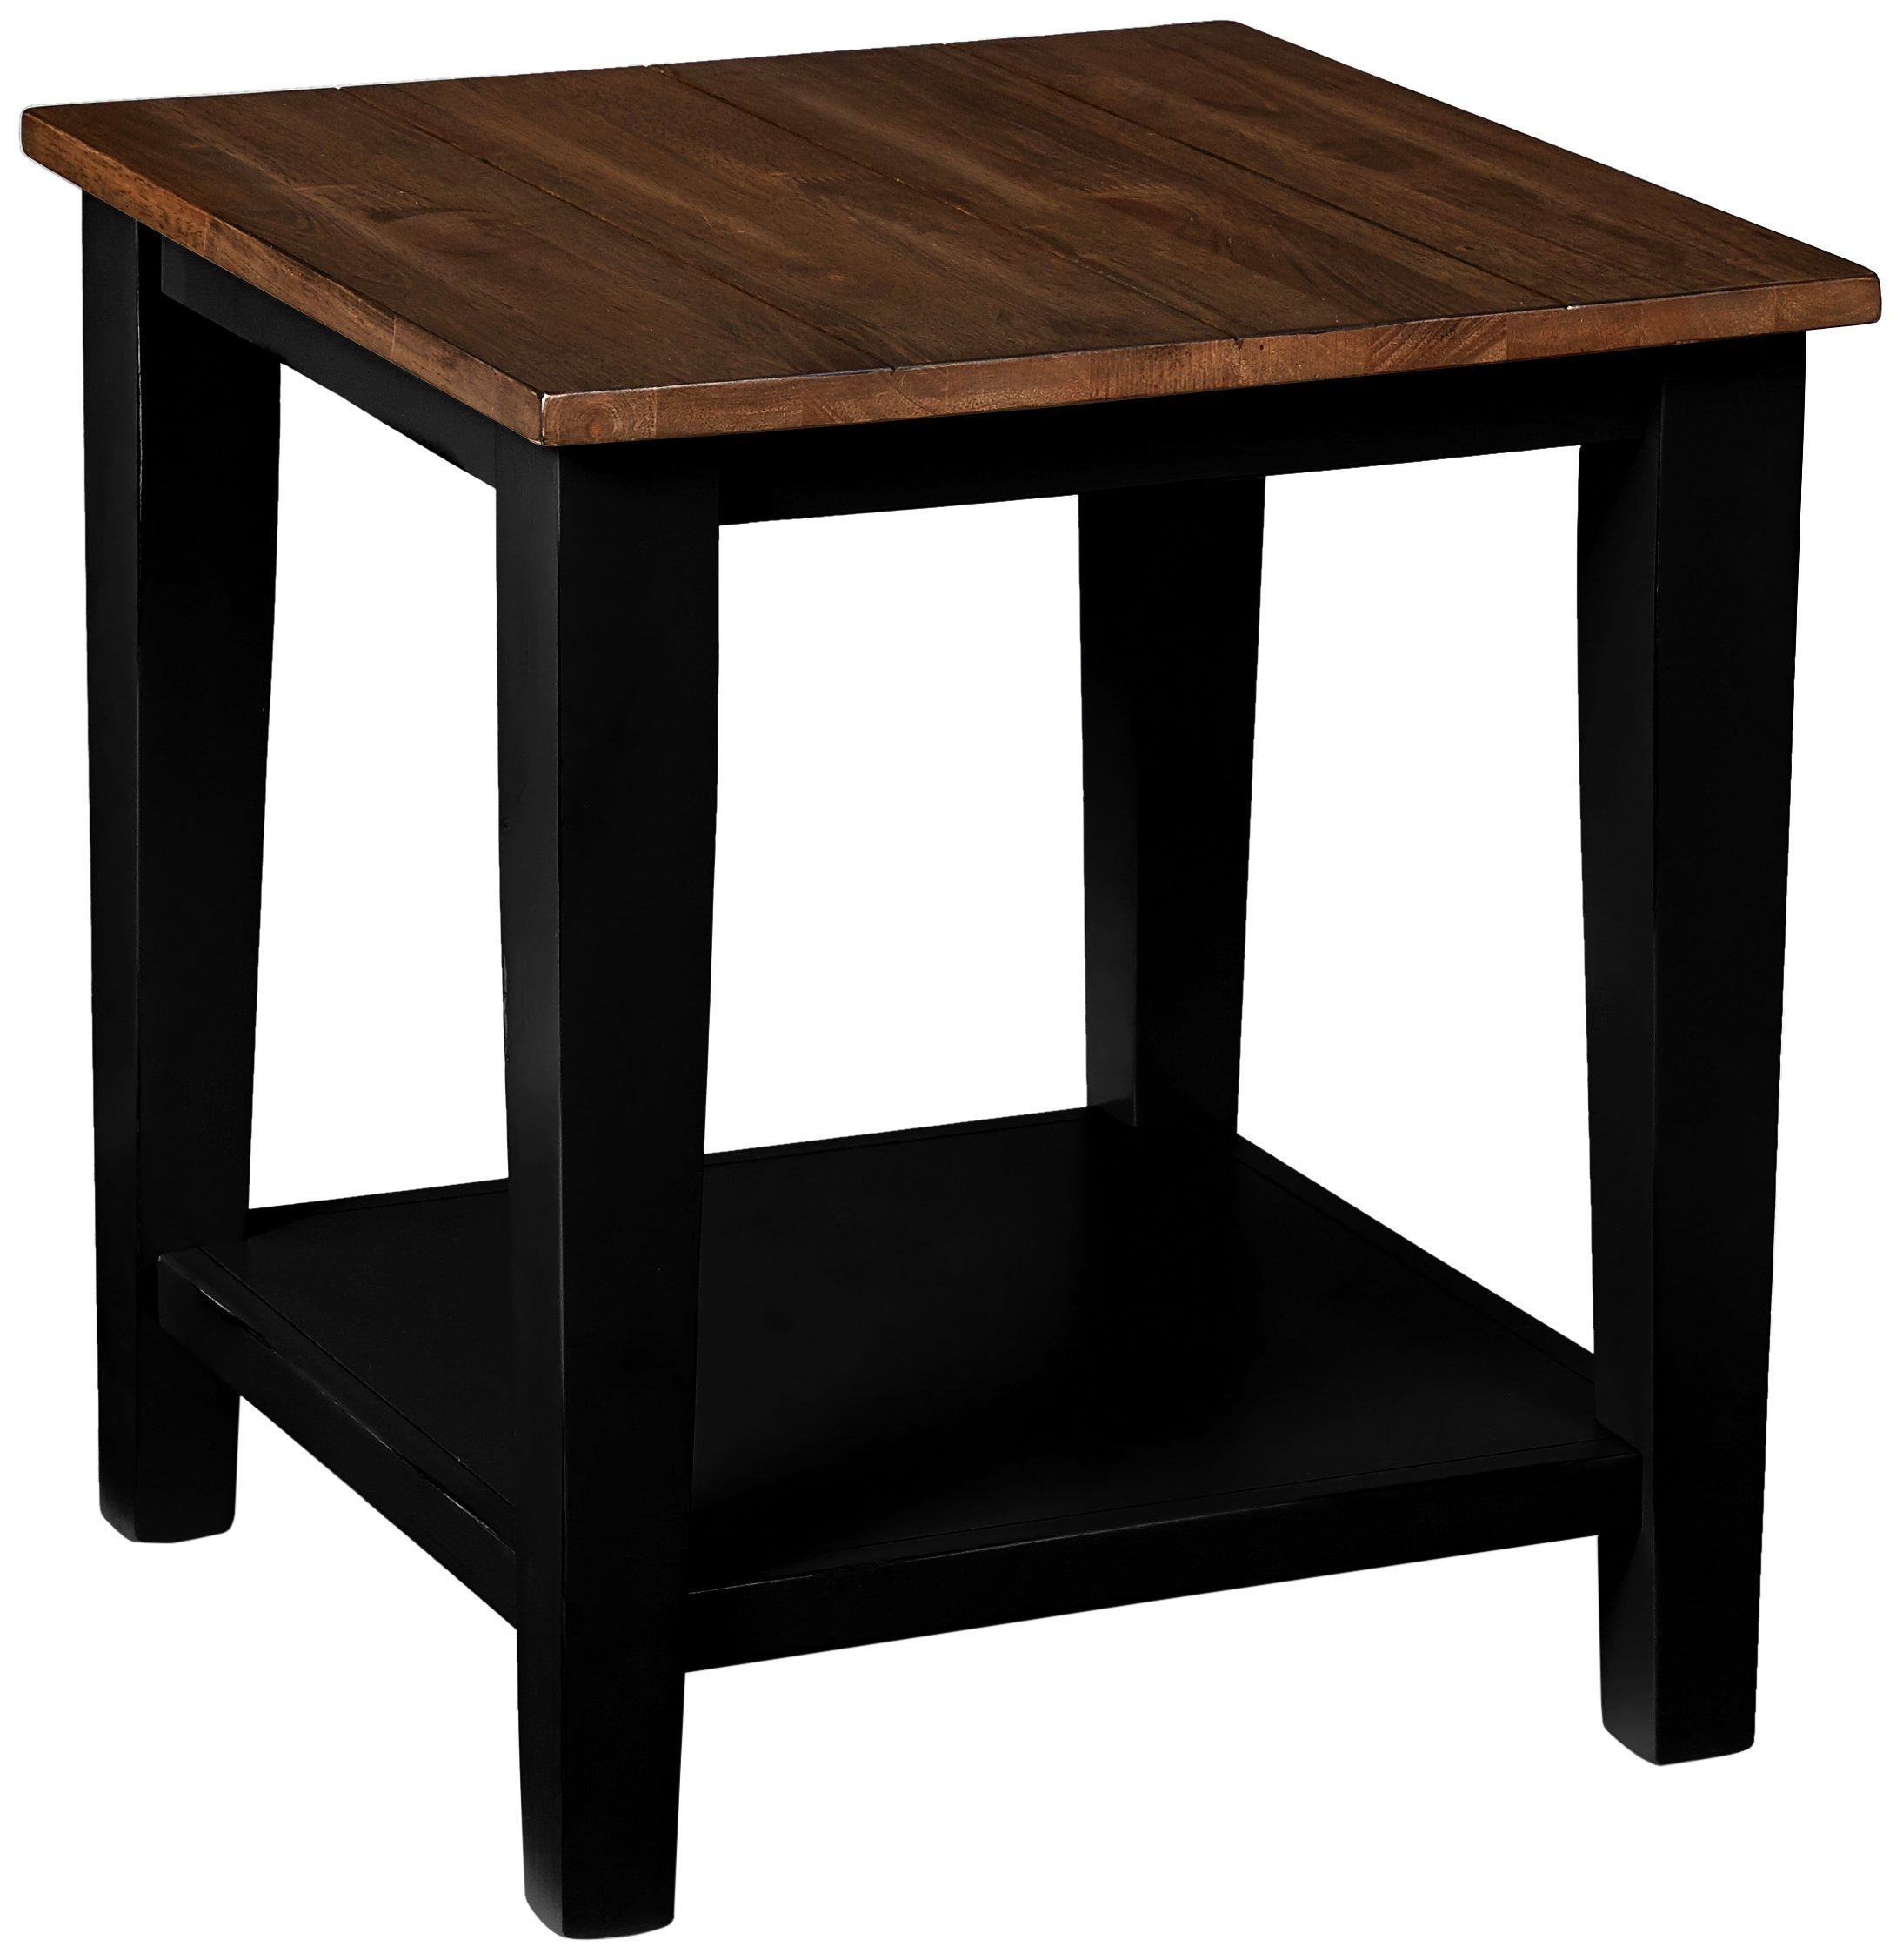 Simmons Casegoods 7558-47 End Table, Greige Black - PREMIUM valspar, Multi step Finish Vintage brown and Matte Black, slightly distressed finishes Sturdy Construction - living-room-furniture, living-room, end-tables - 81R NOyF2kL -